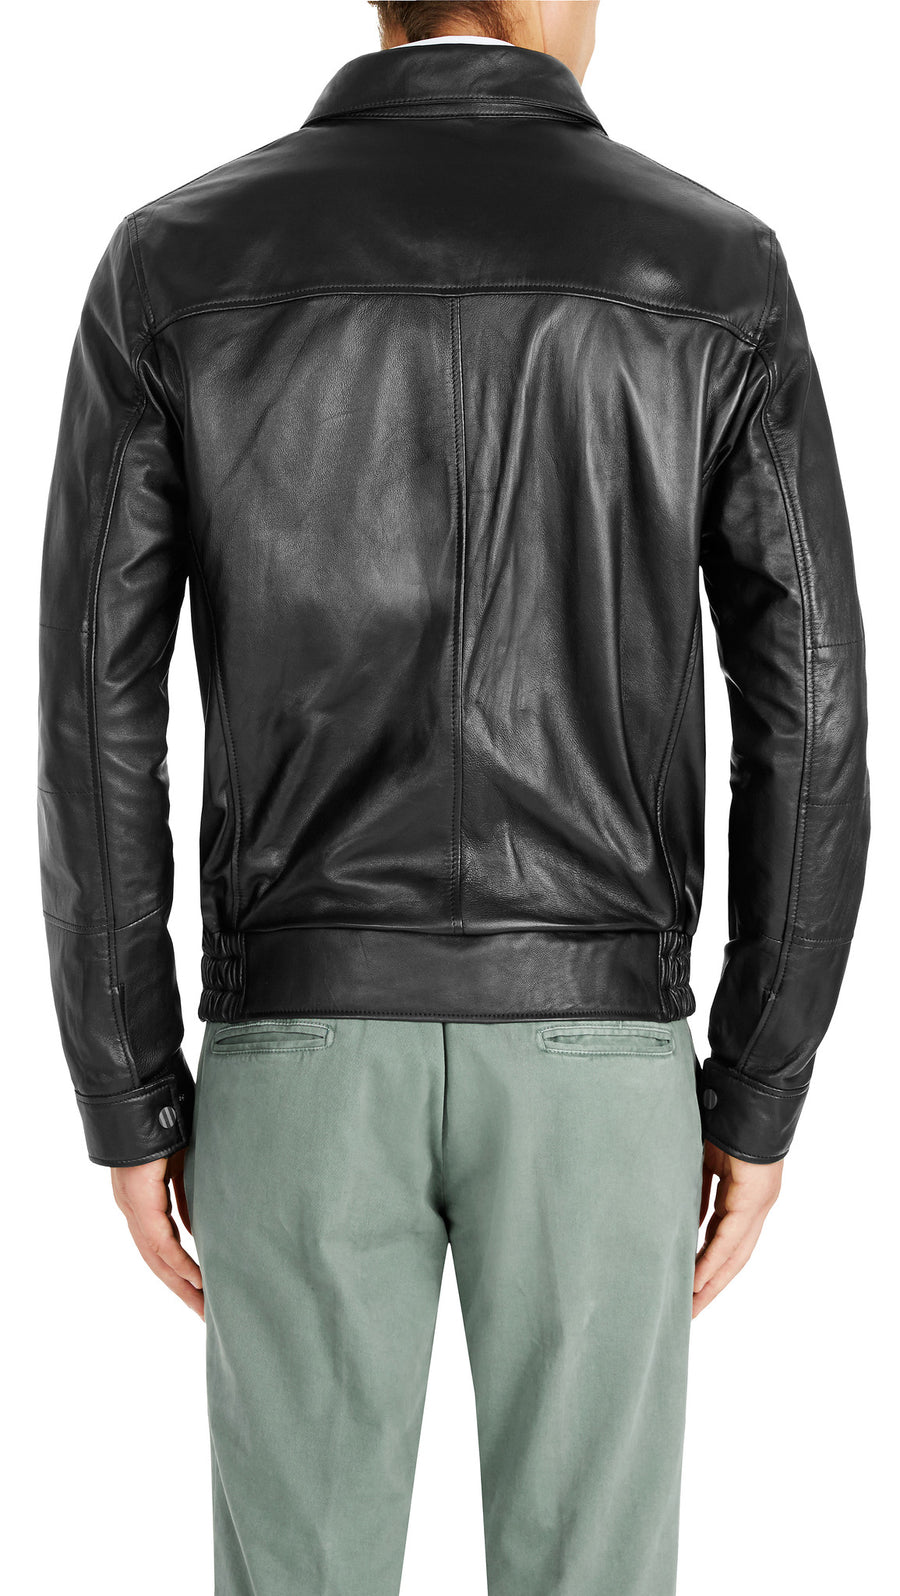 Bennett Leather Bomber Jacket in Black - Ron Bennett Menswear  - 1